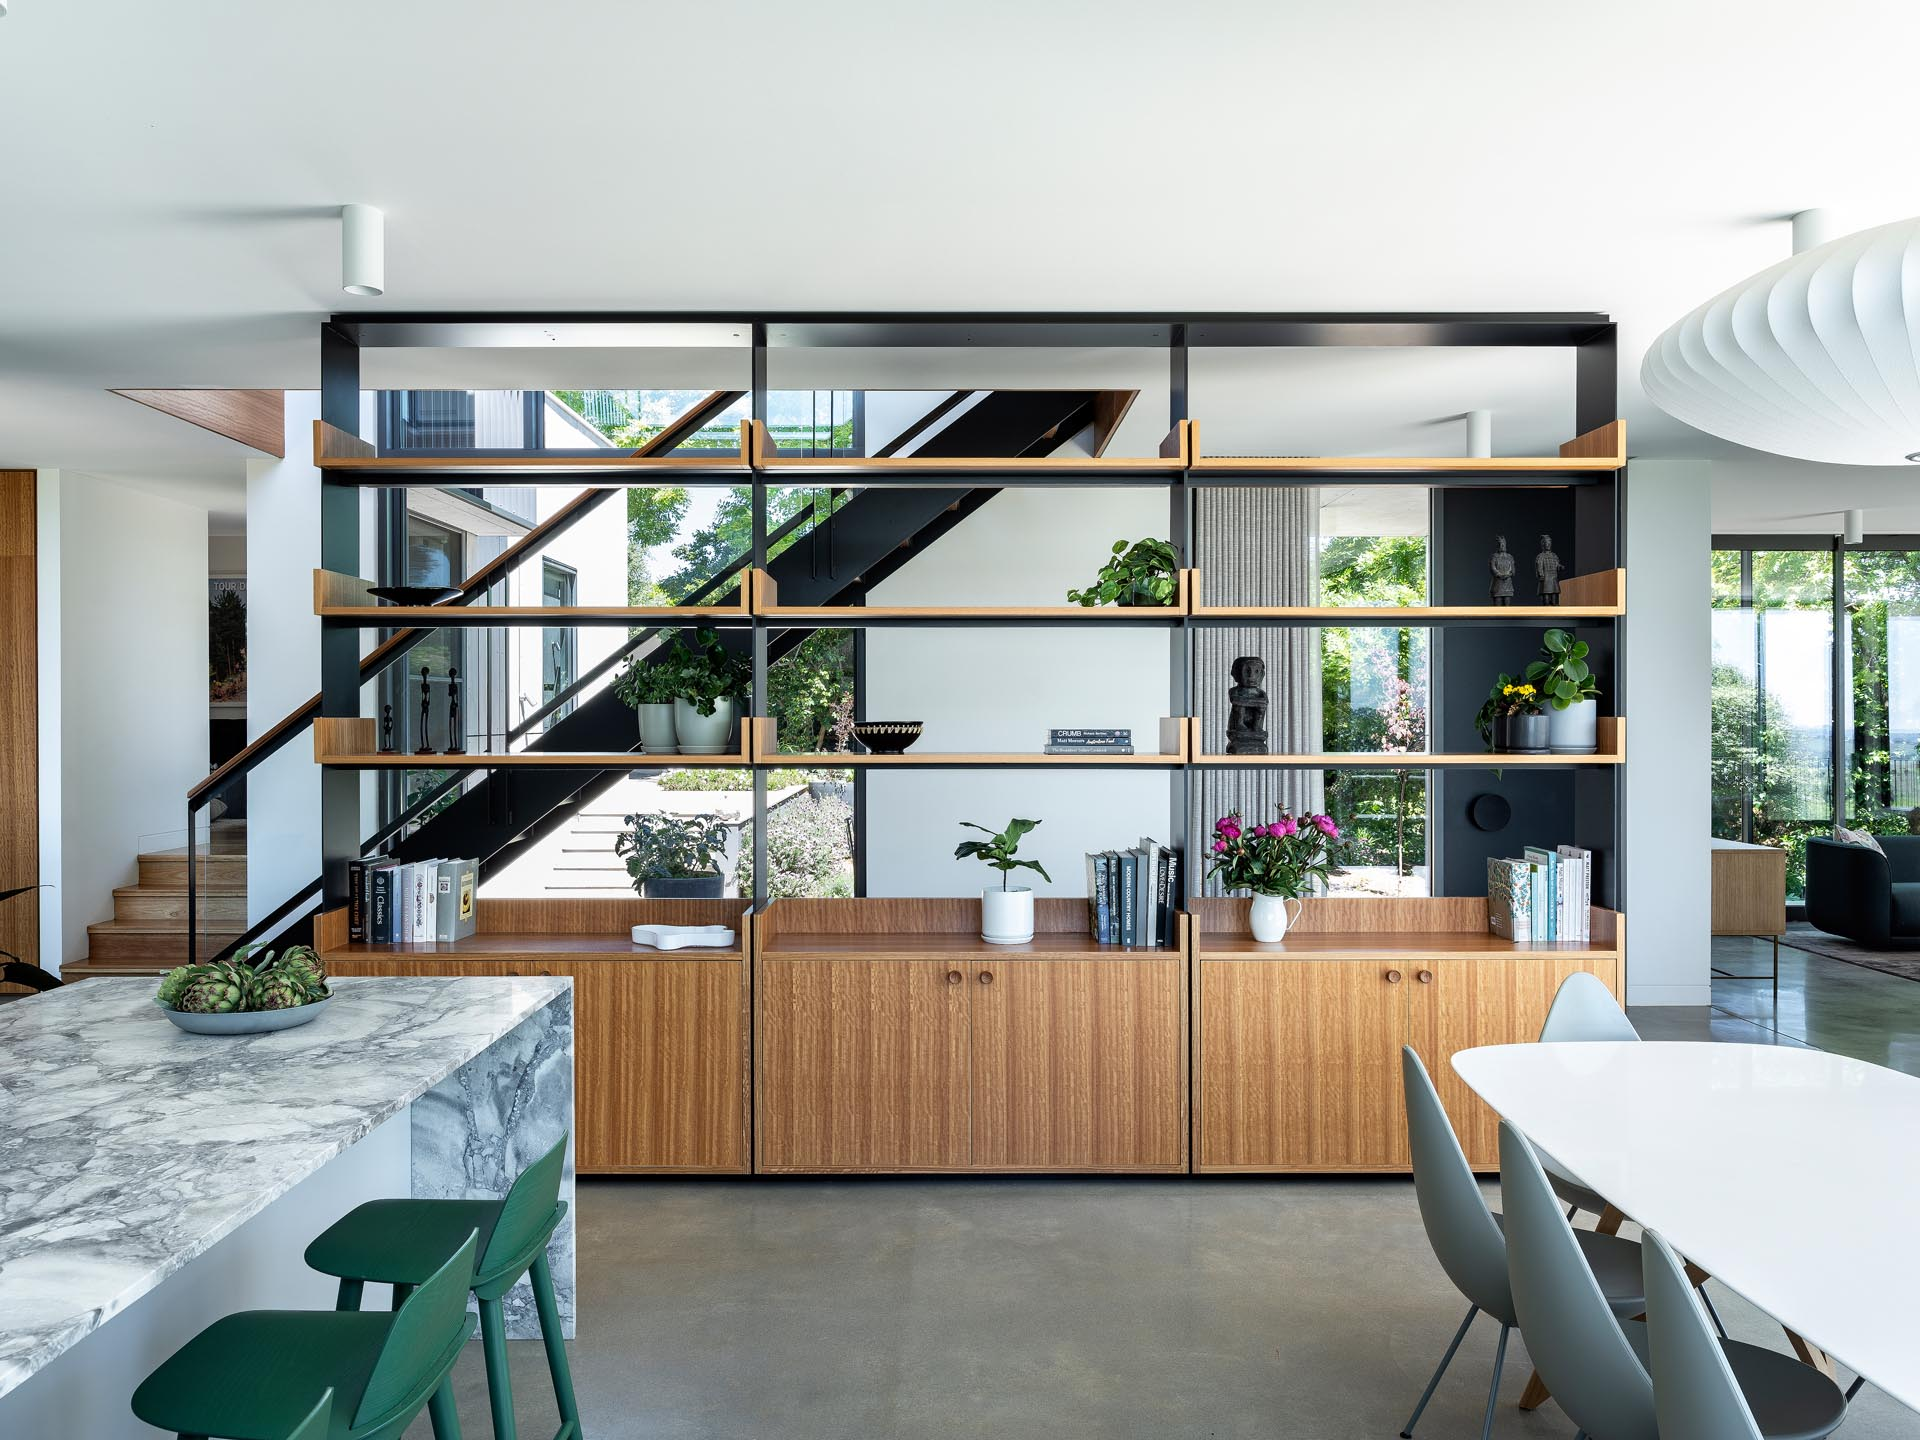 One design element found in the interior of this modern home, is an open shelving unit that separates the entryway and hallway from the living, dining, and kitchen areas.